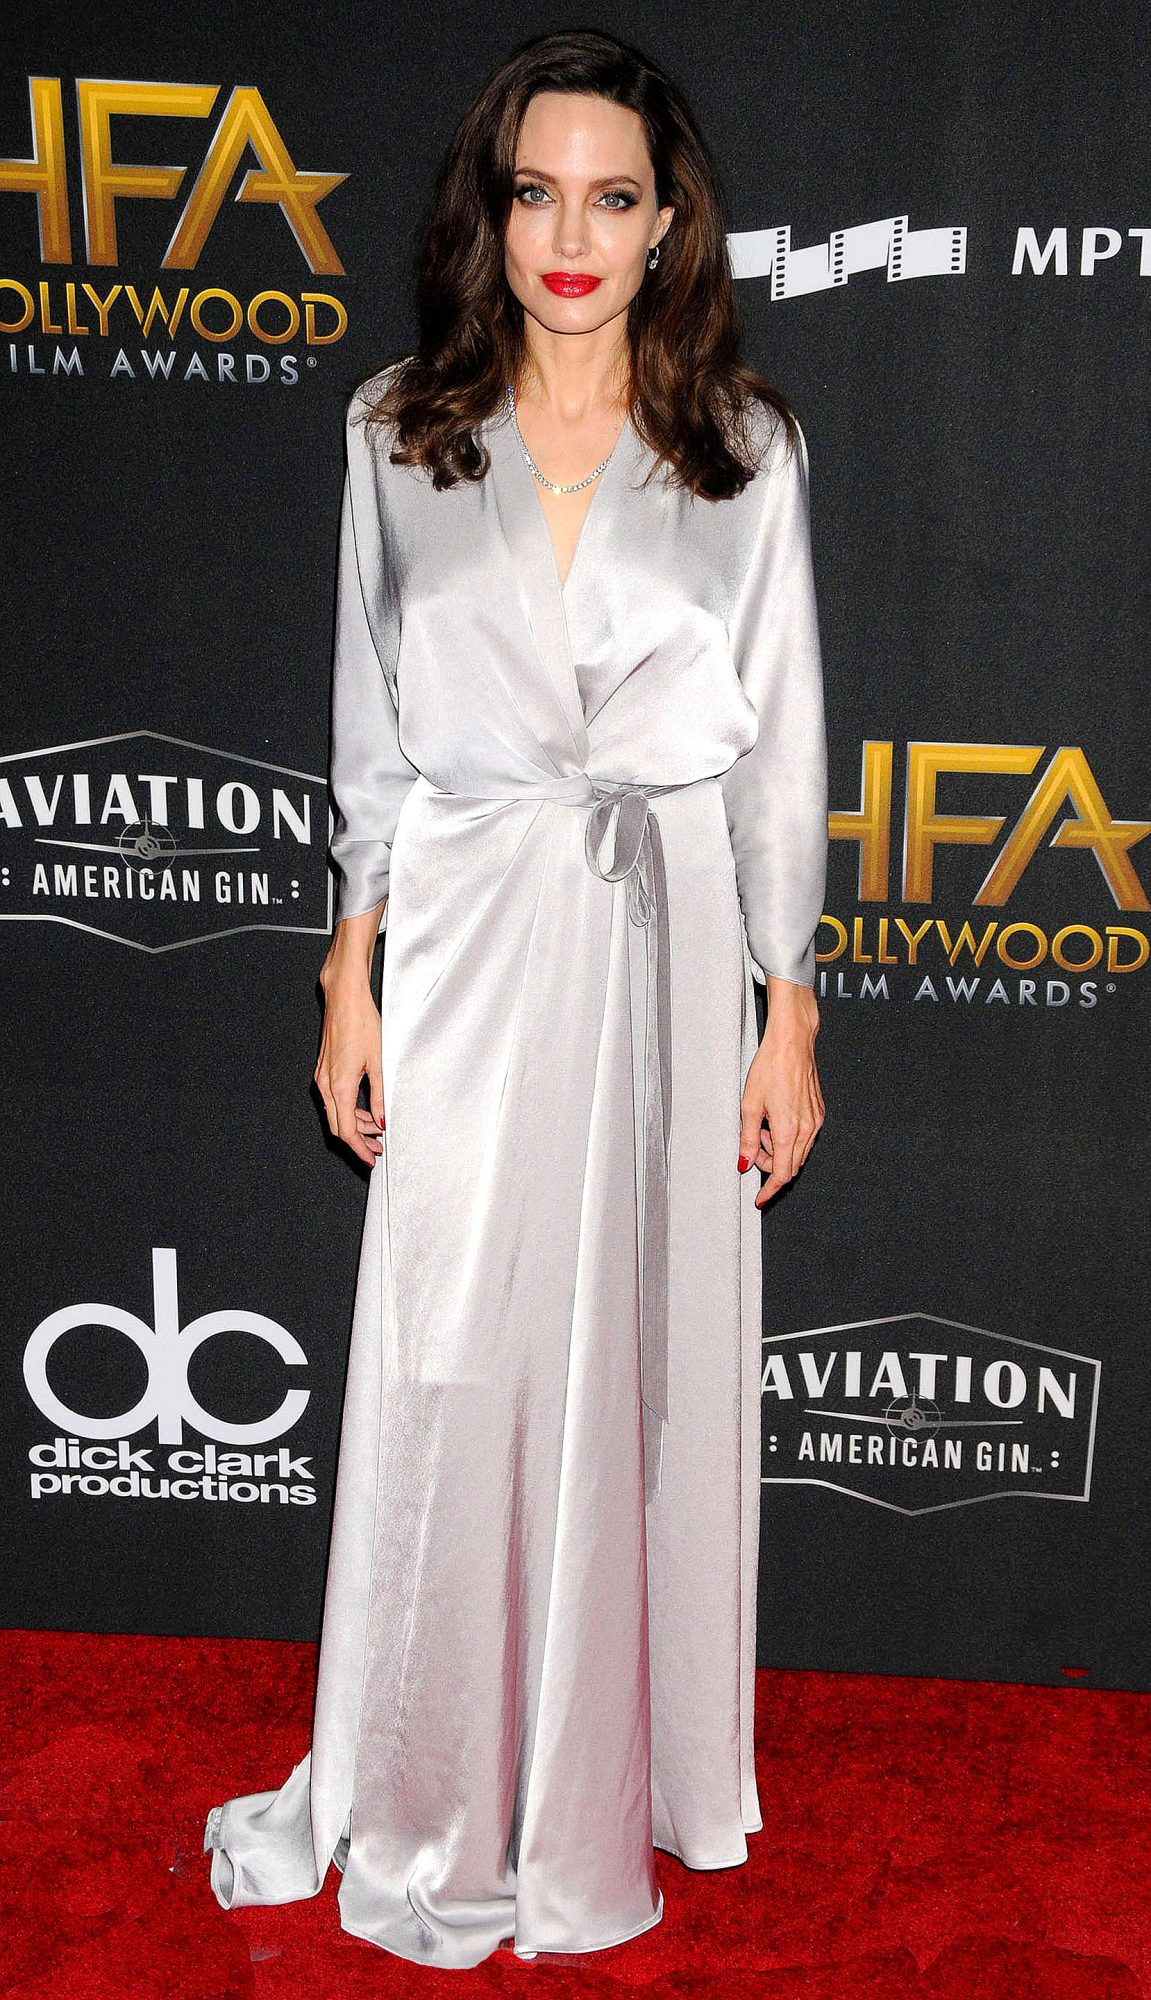 Celebrities attend the 21st Annual Hollywood Film Awards